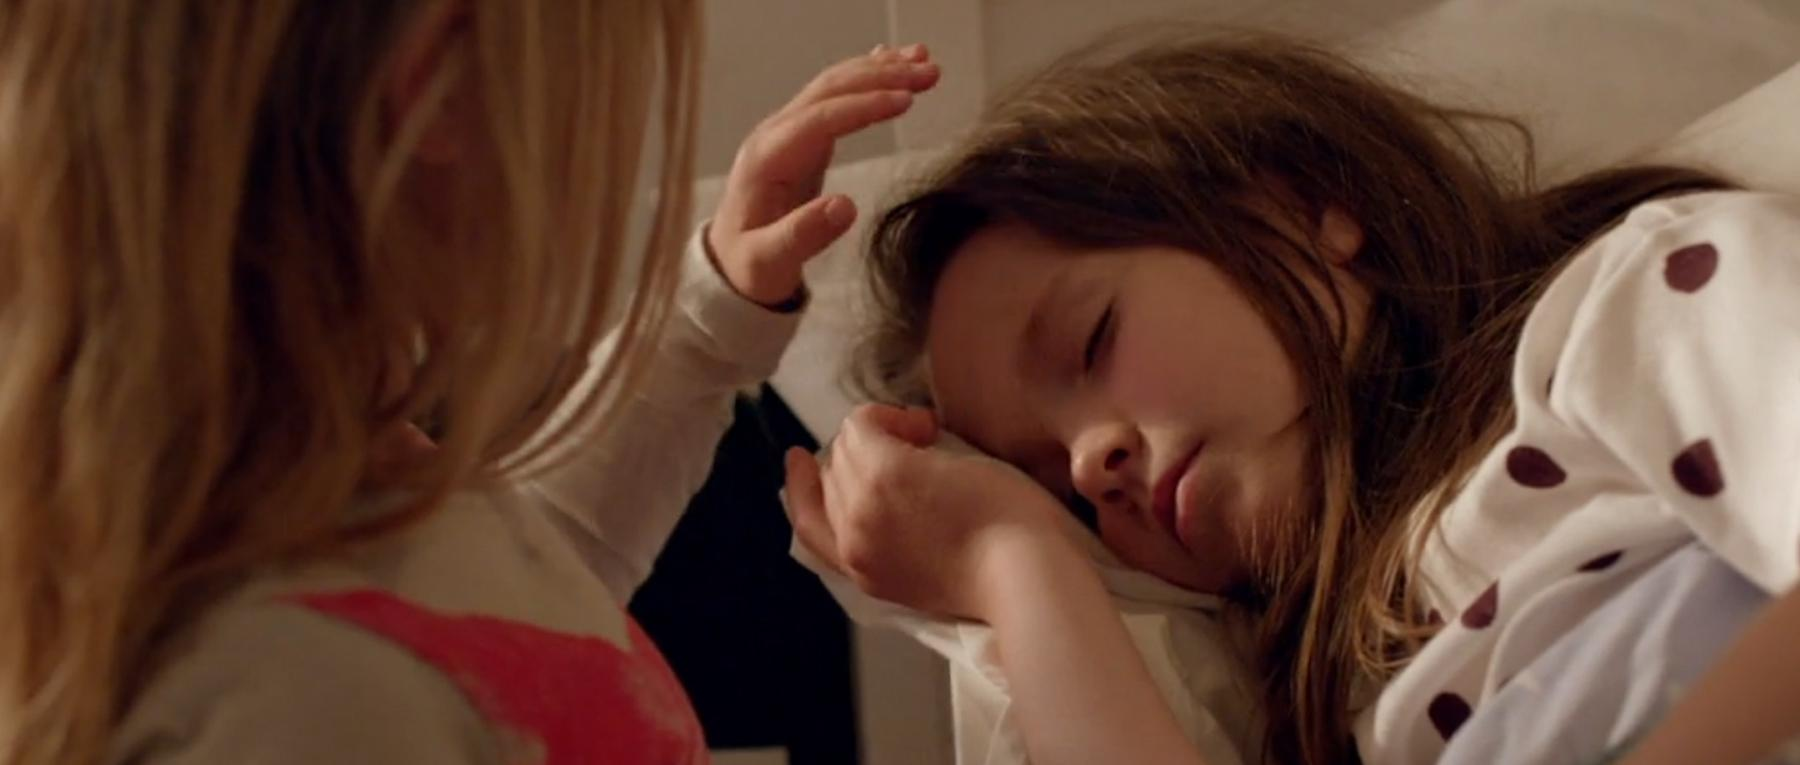 Try to Not Fall in Love With the Charming Family in Ikea's New Interactive Campaign http://t.co/I0ELIb52pn http://t.co/iLPwaAB7gt